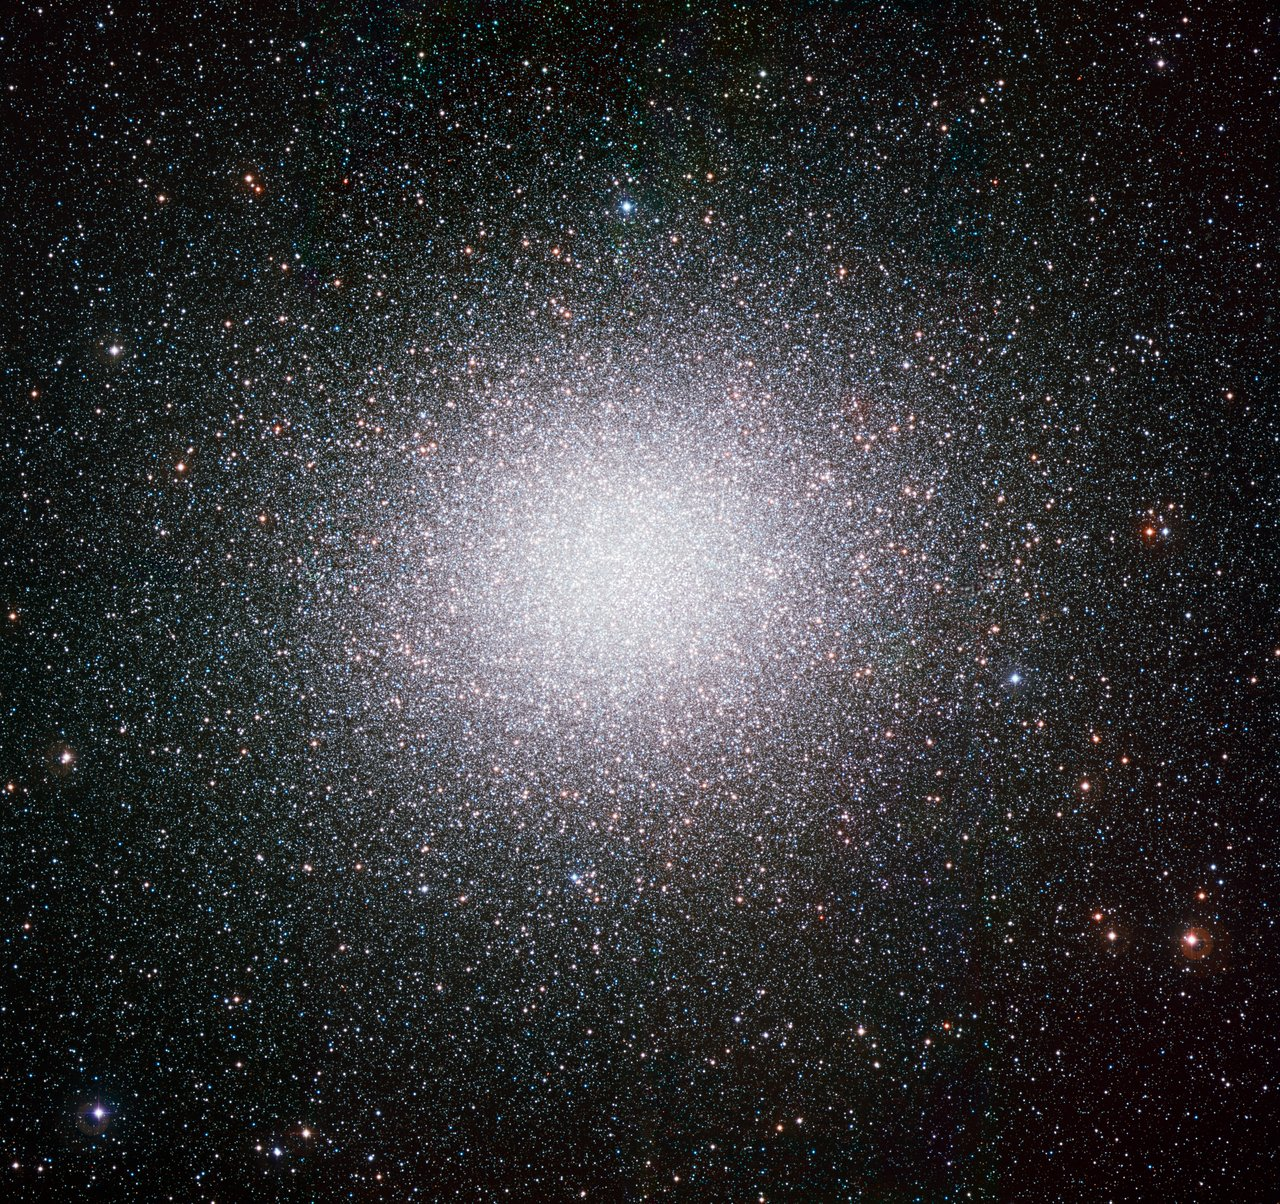 Mounted image 042: The Globular Cluster Omega Centauri